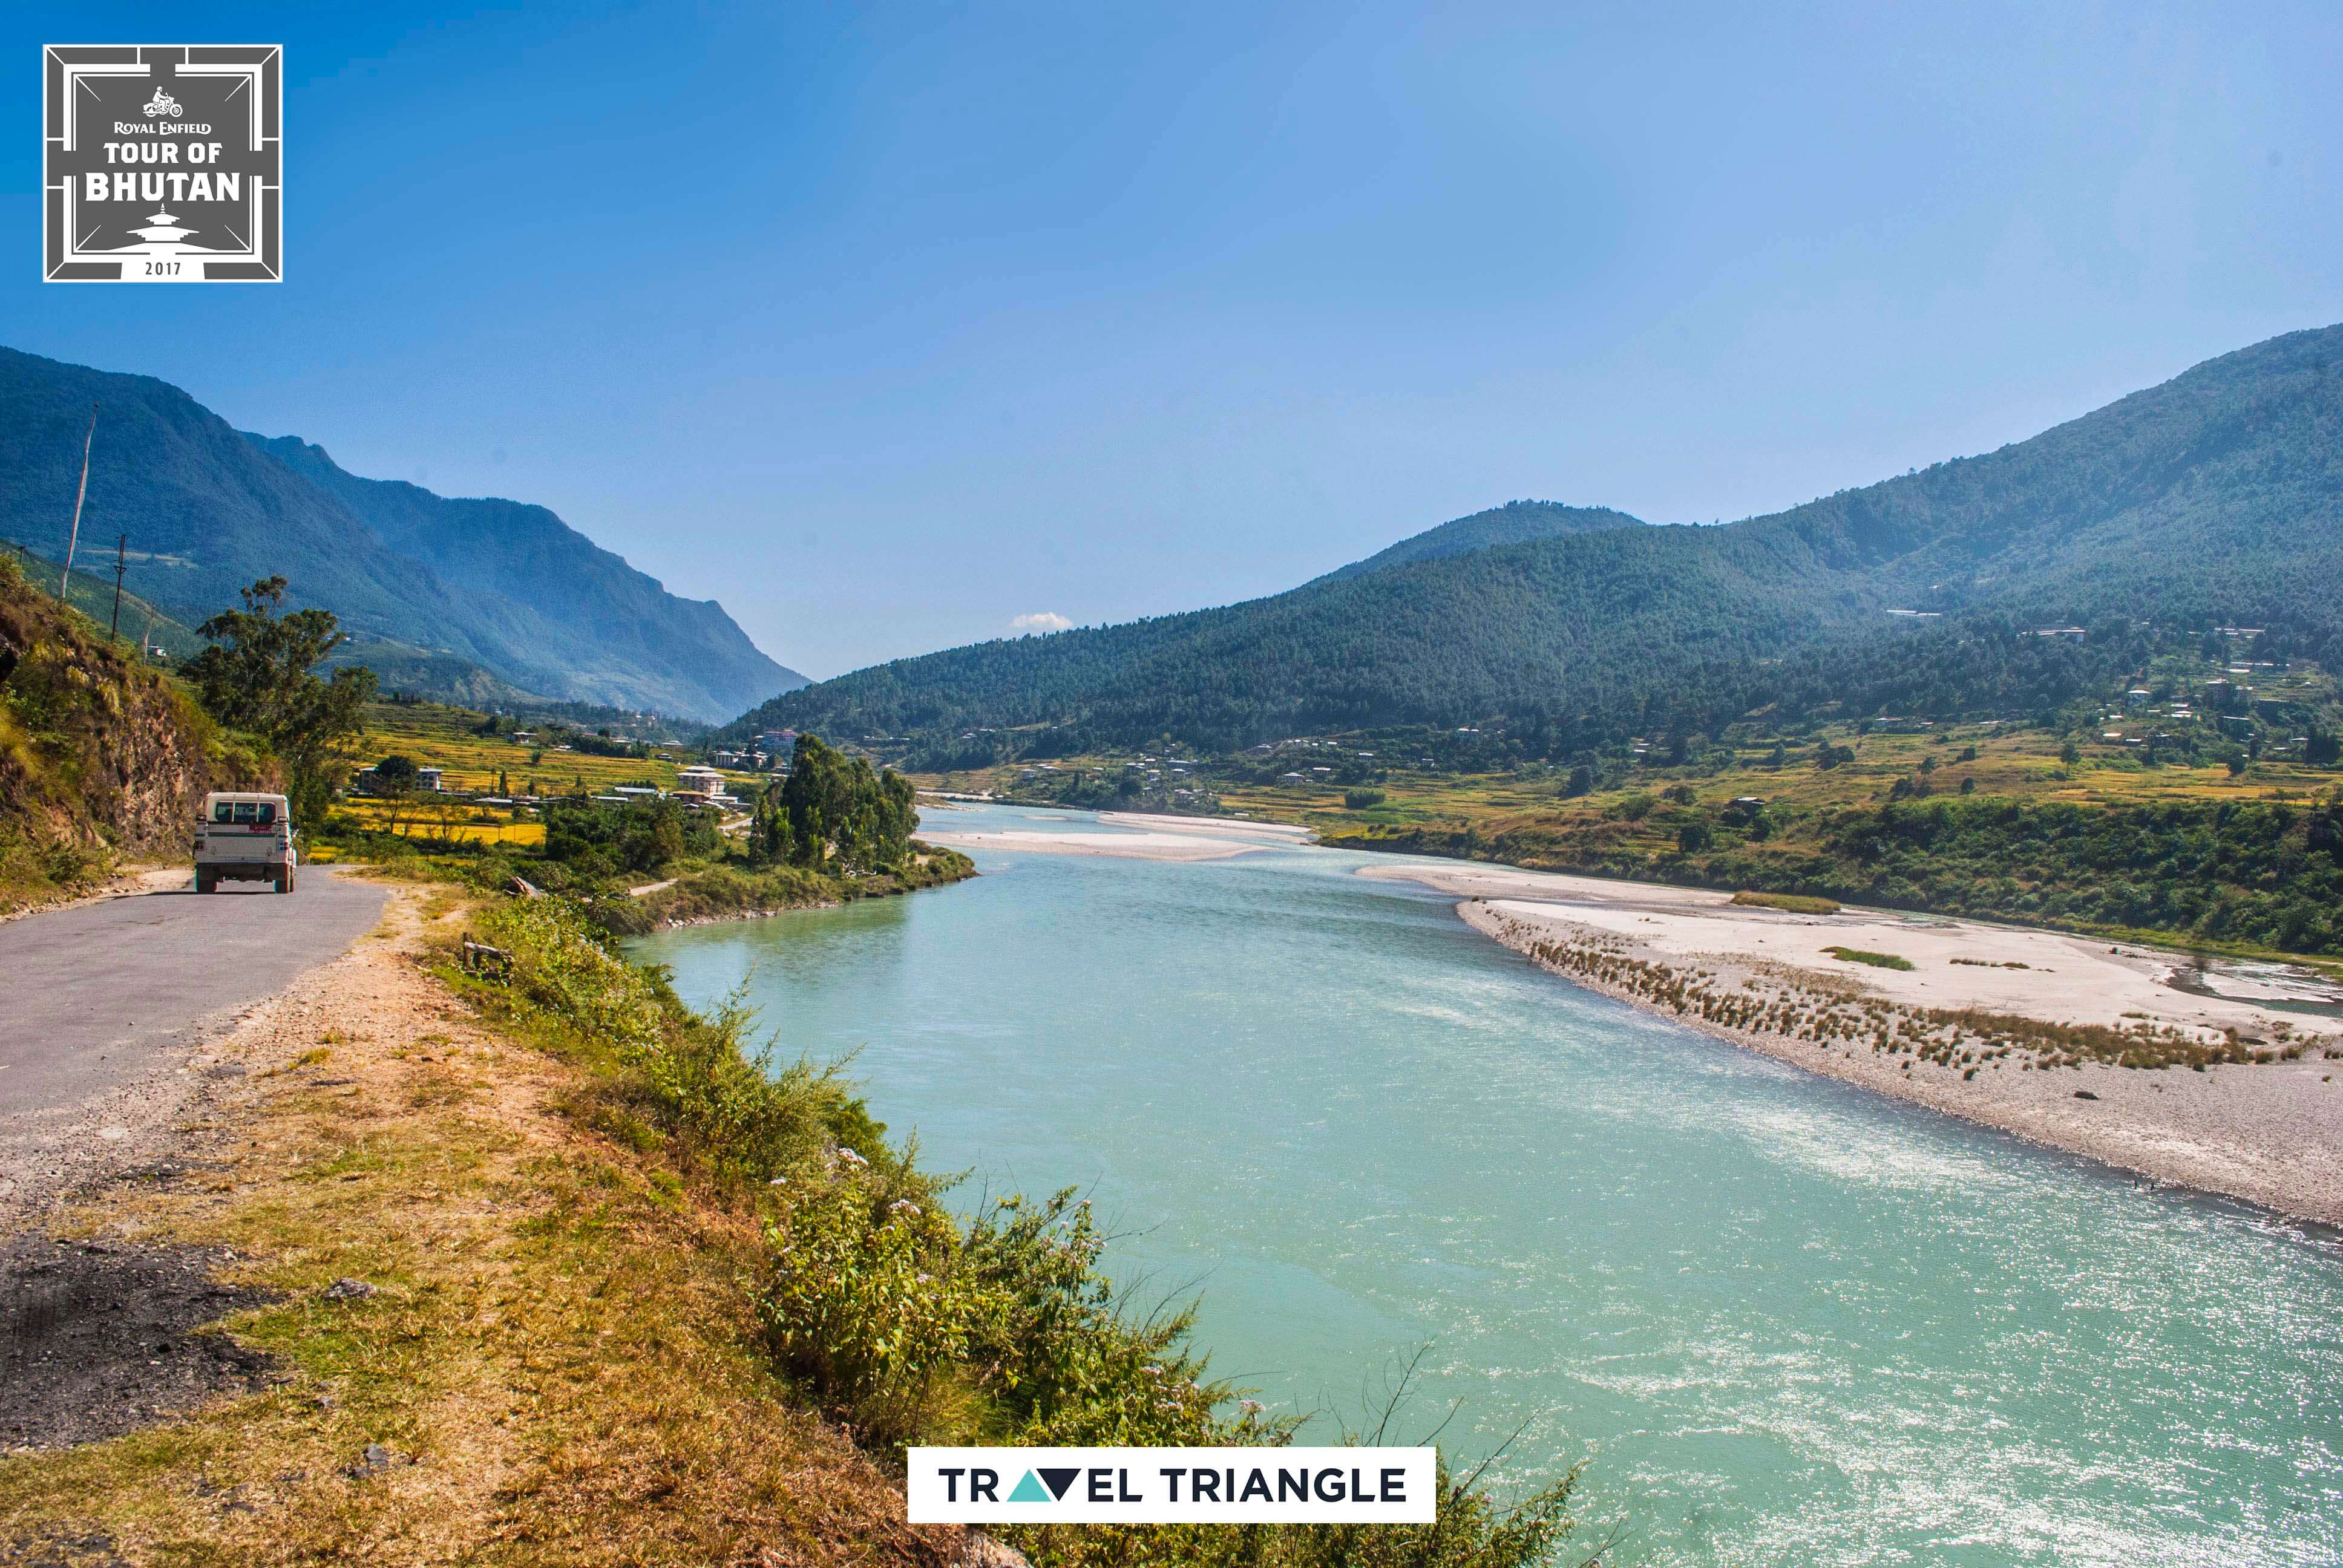 Thimphu to Punakha: the scenic vistas and river